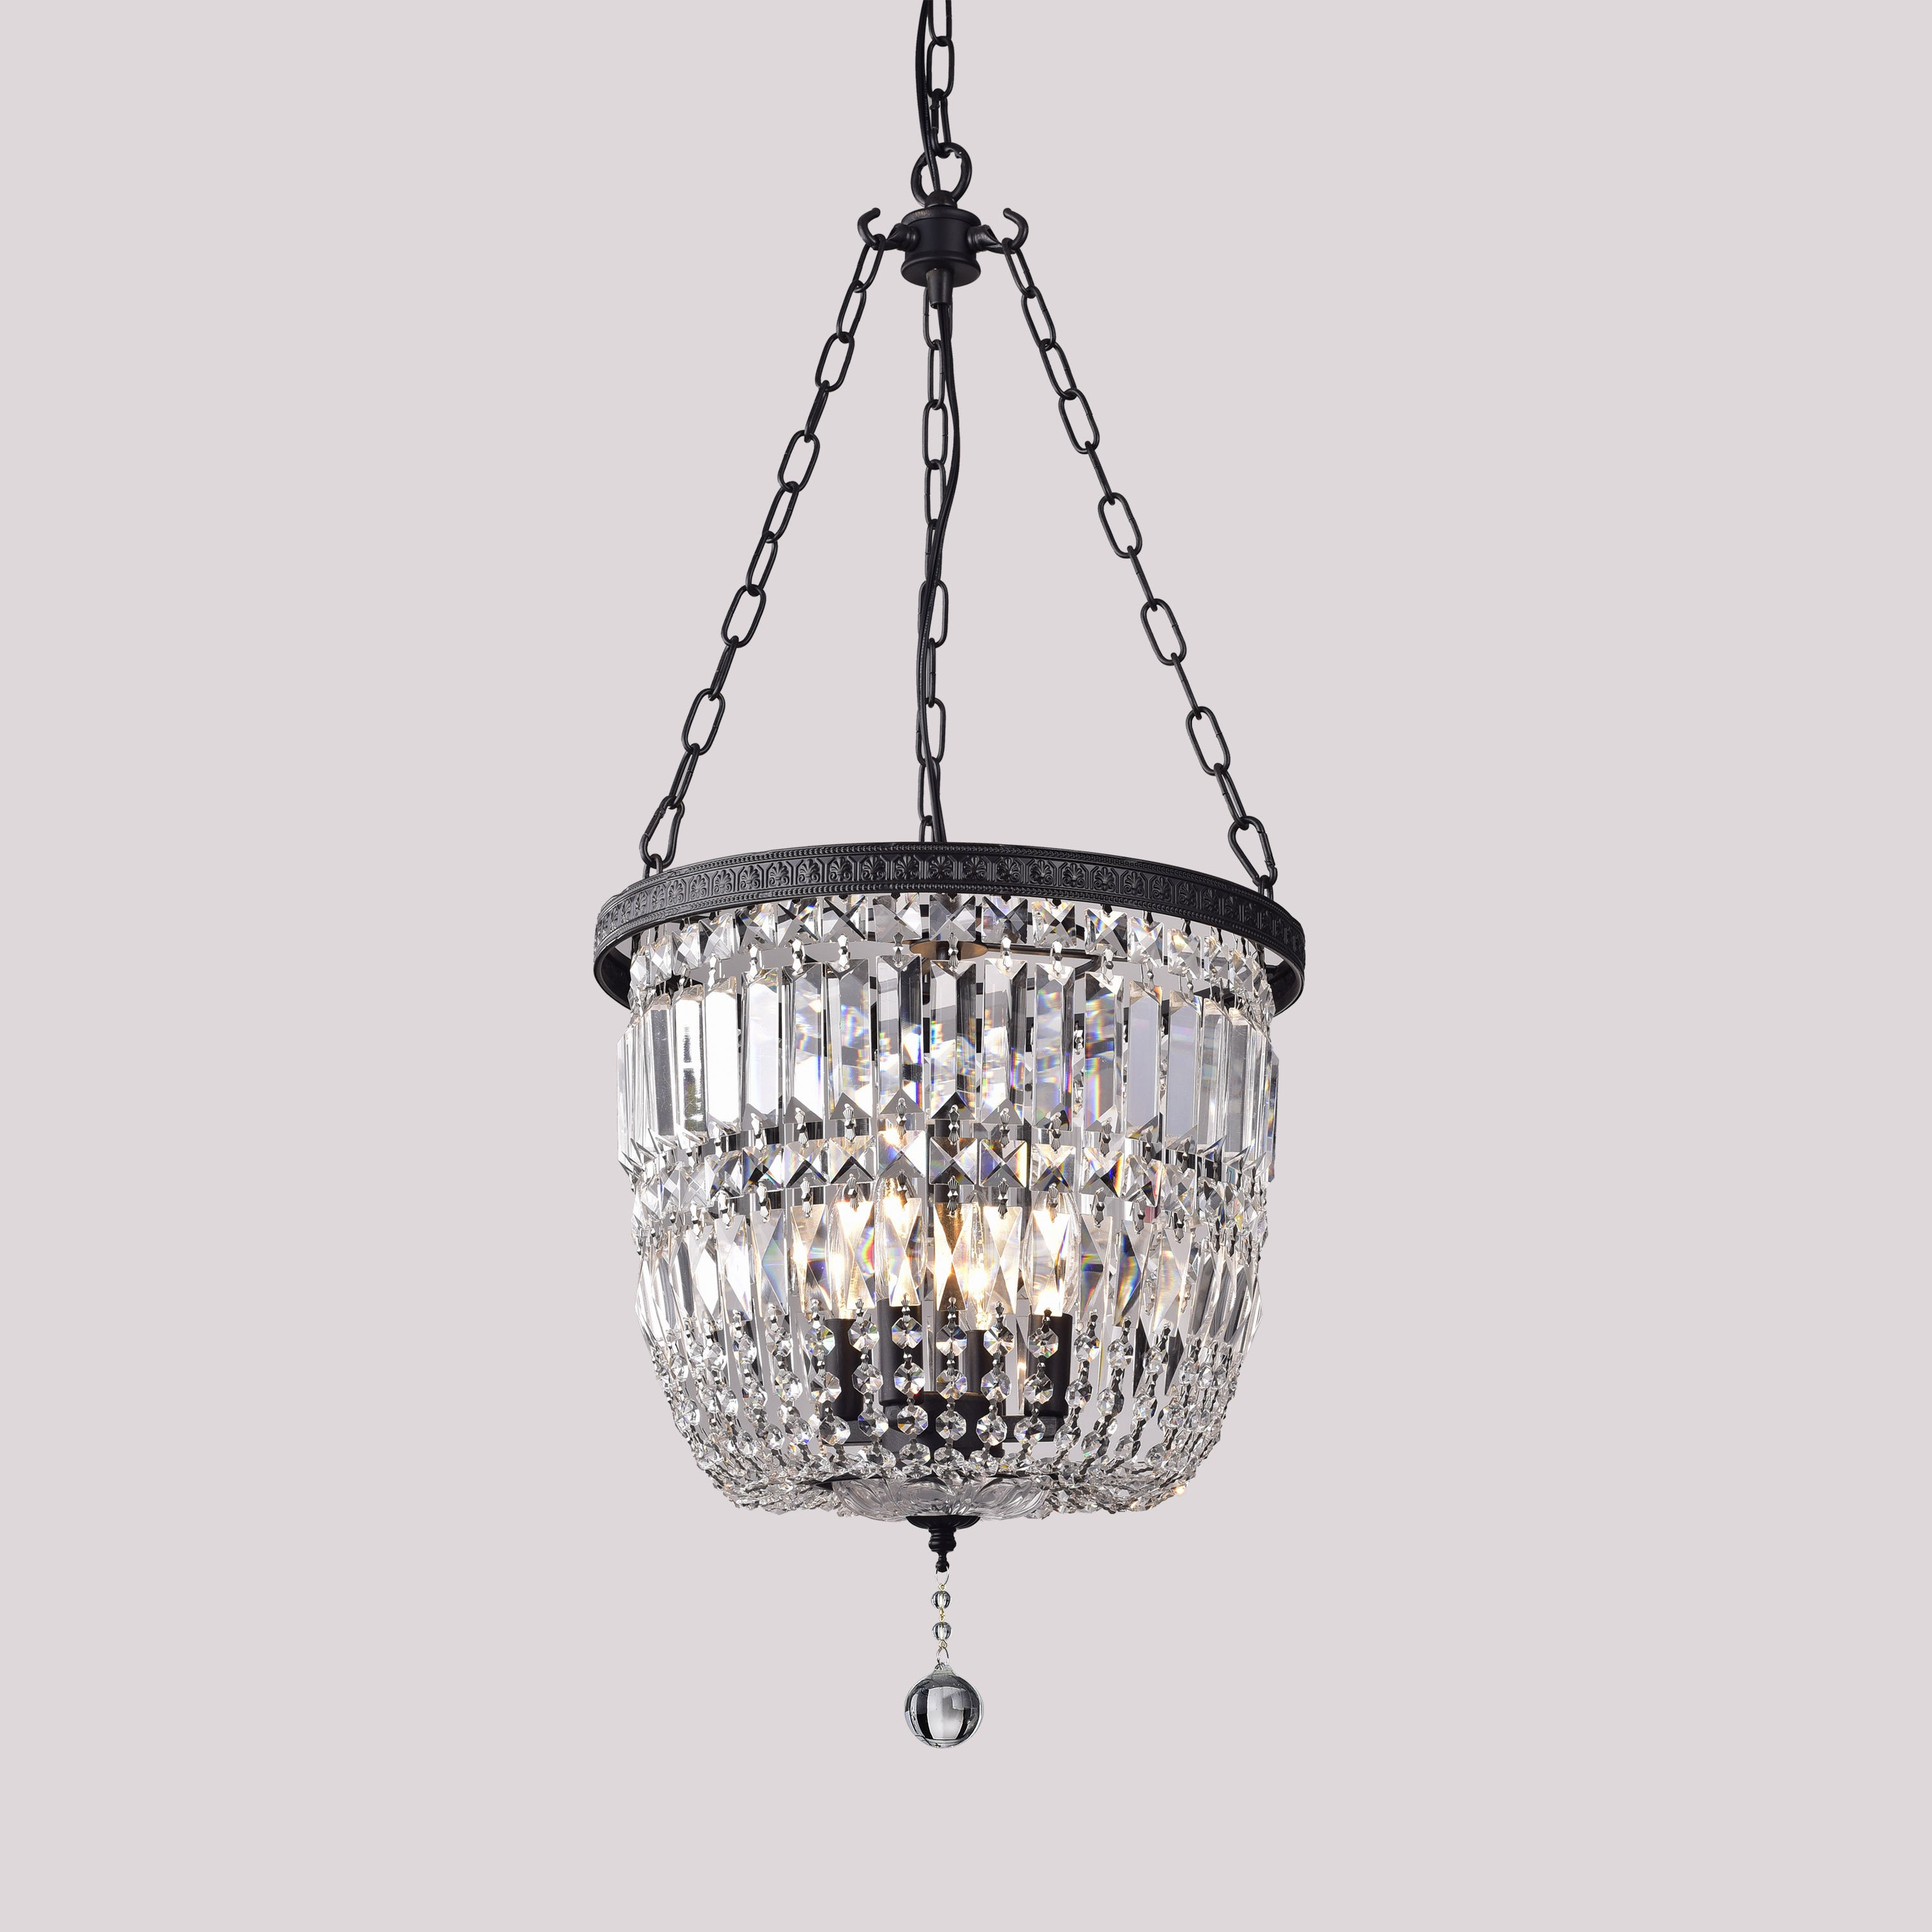 Shakira Antique Black Bowl Shaped Crystal Chandelier Free